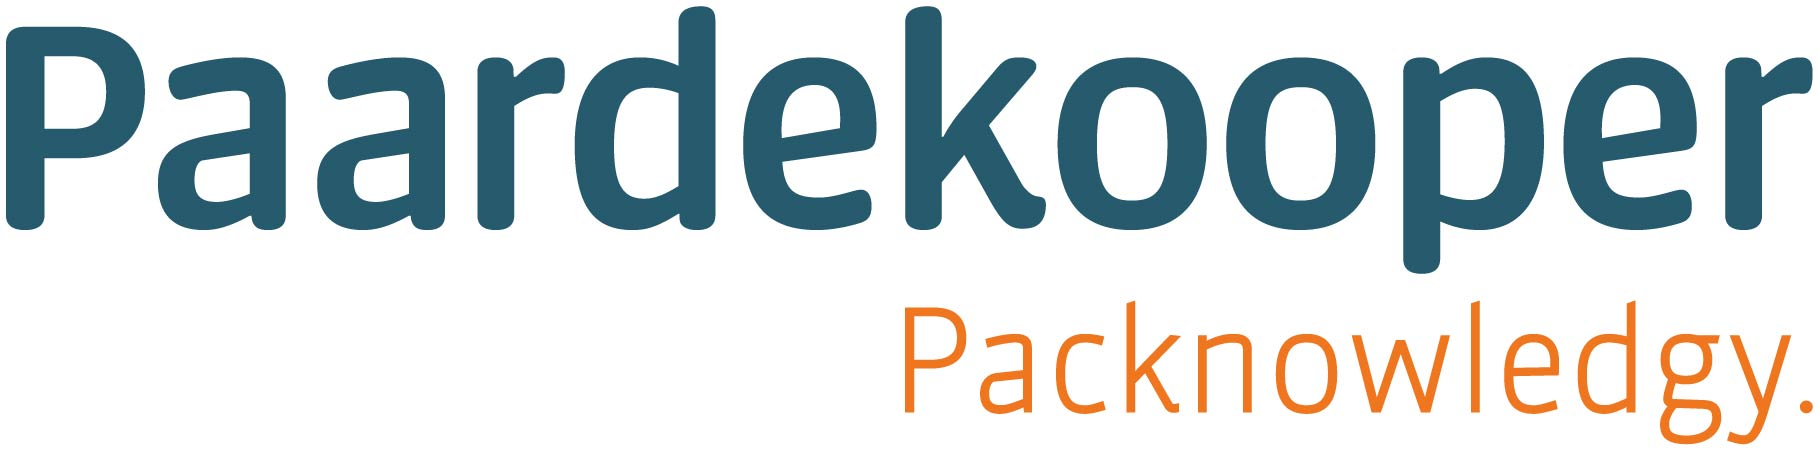 logo Paardekooper packnowledgy